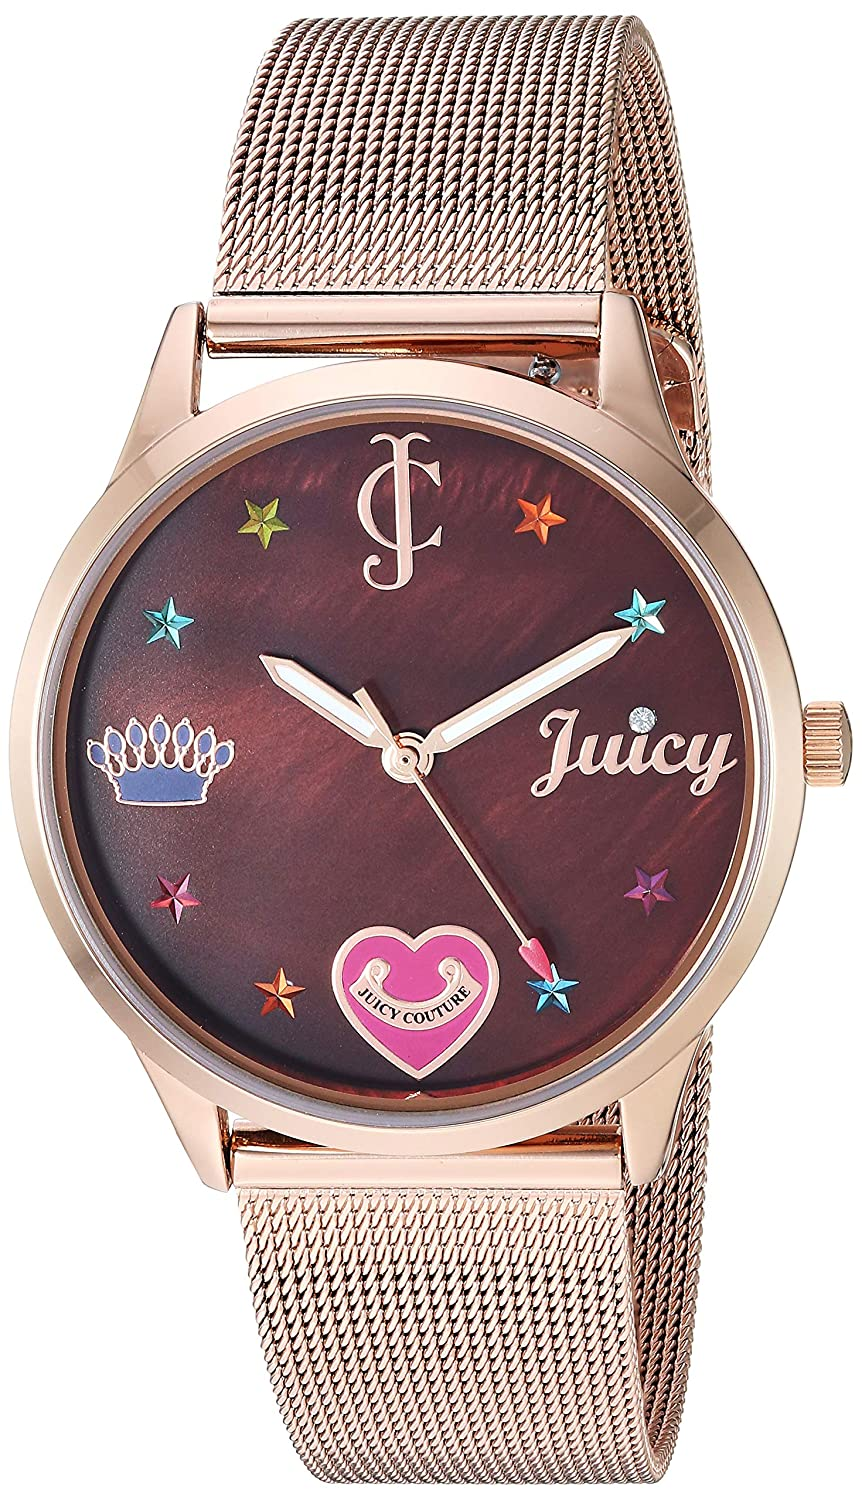 87b4beed323 Amazon.com  Juicy Couture Black Label Women s Rose Gold-Tone Mesh Bracelet  Watch  Watches